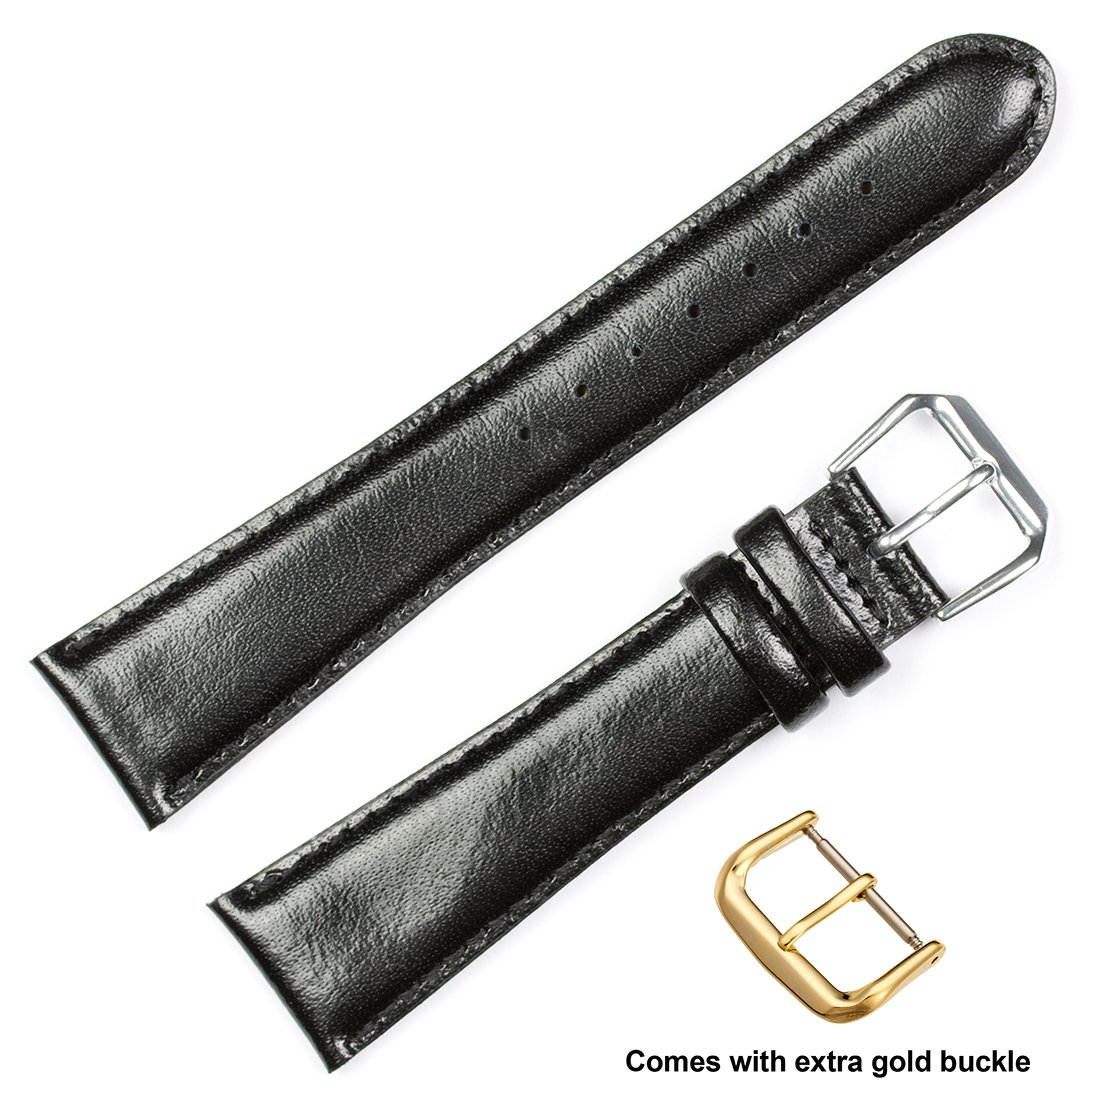 deBeer brand Smooth Leather Watch Band (Silver & Gold Buckle) - Black 19mm (Short Length)